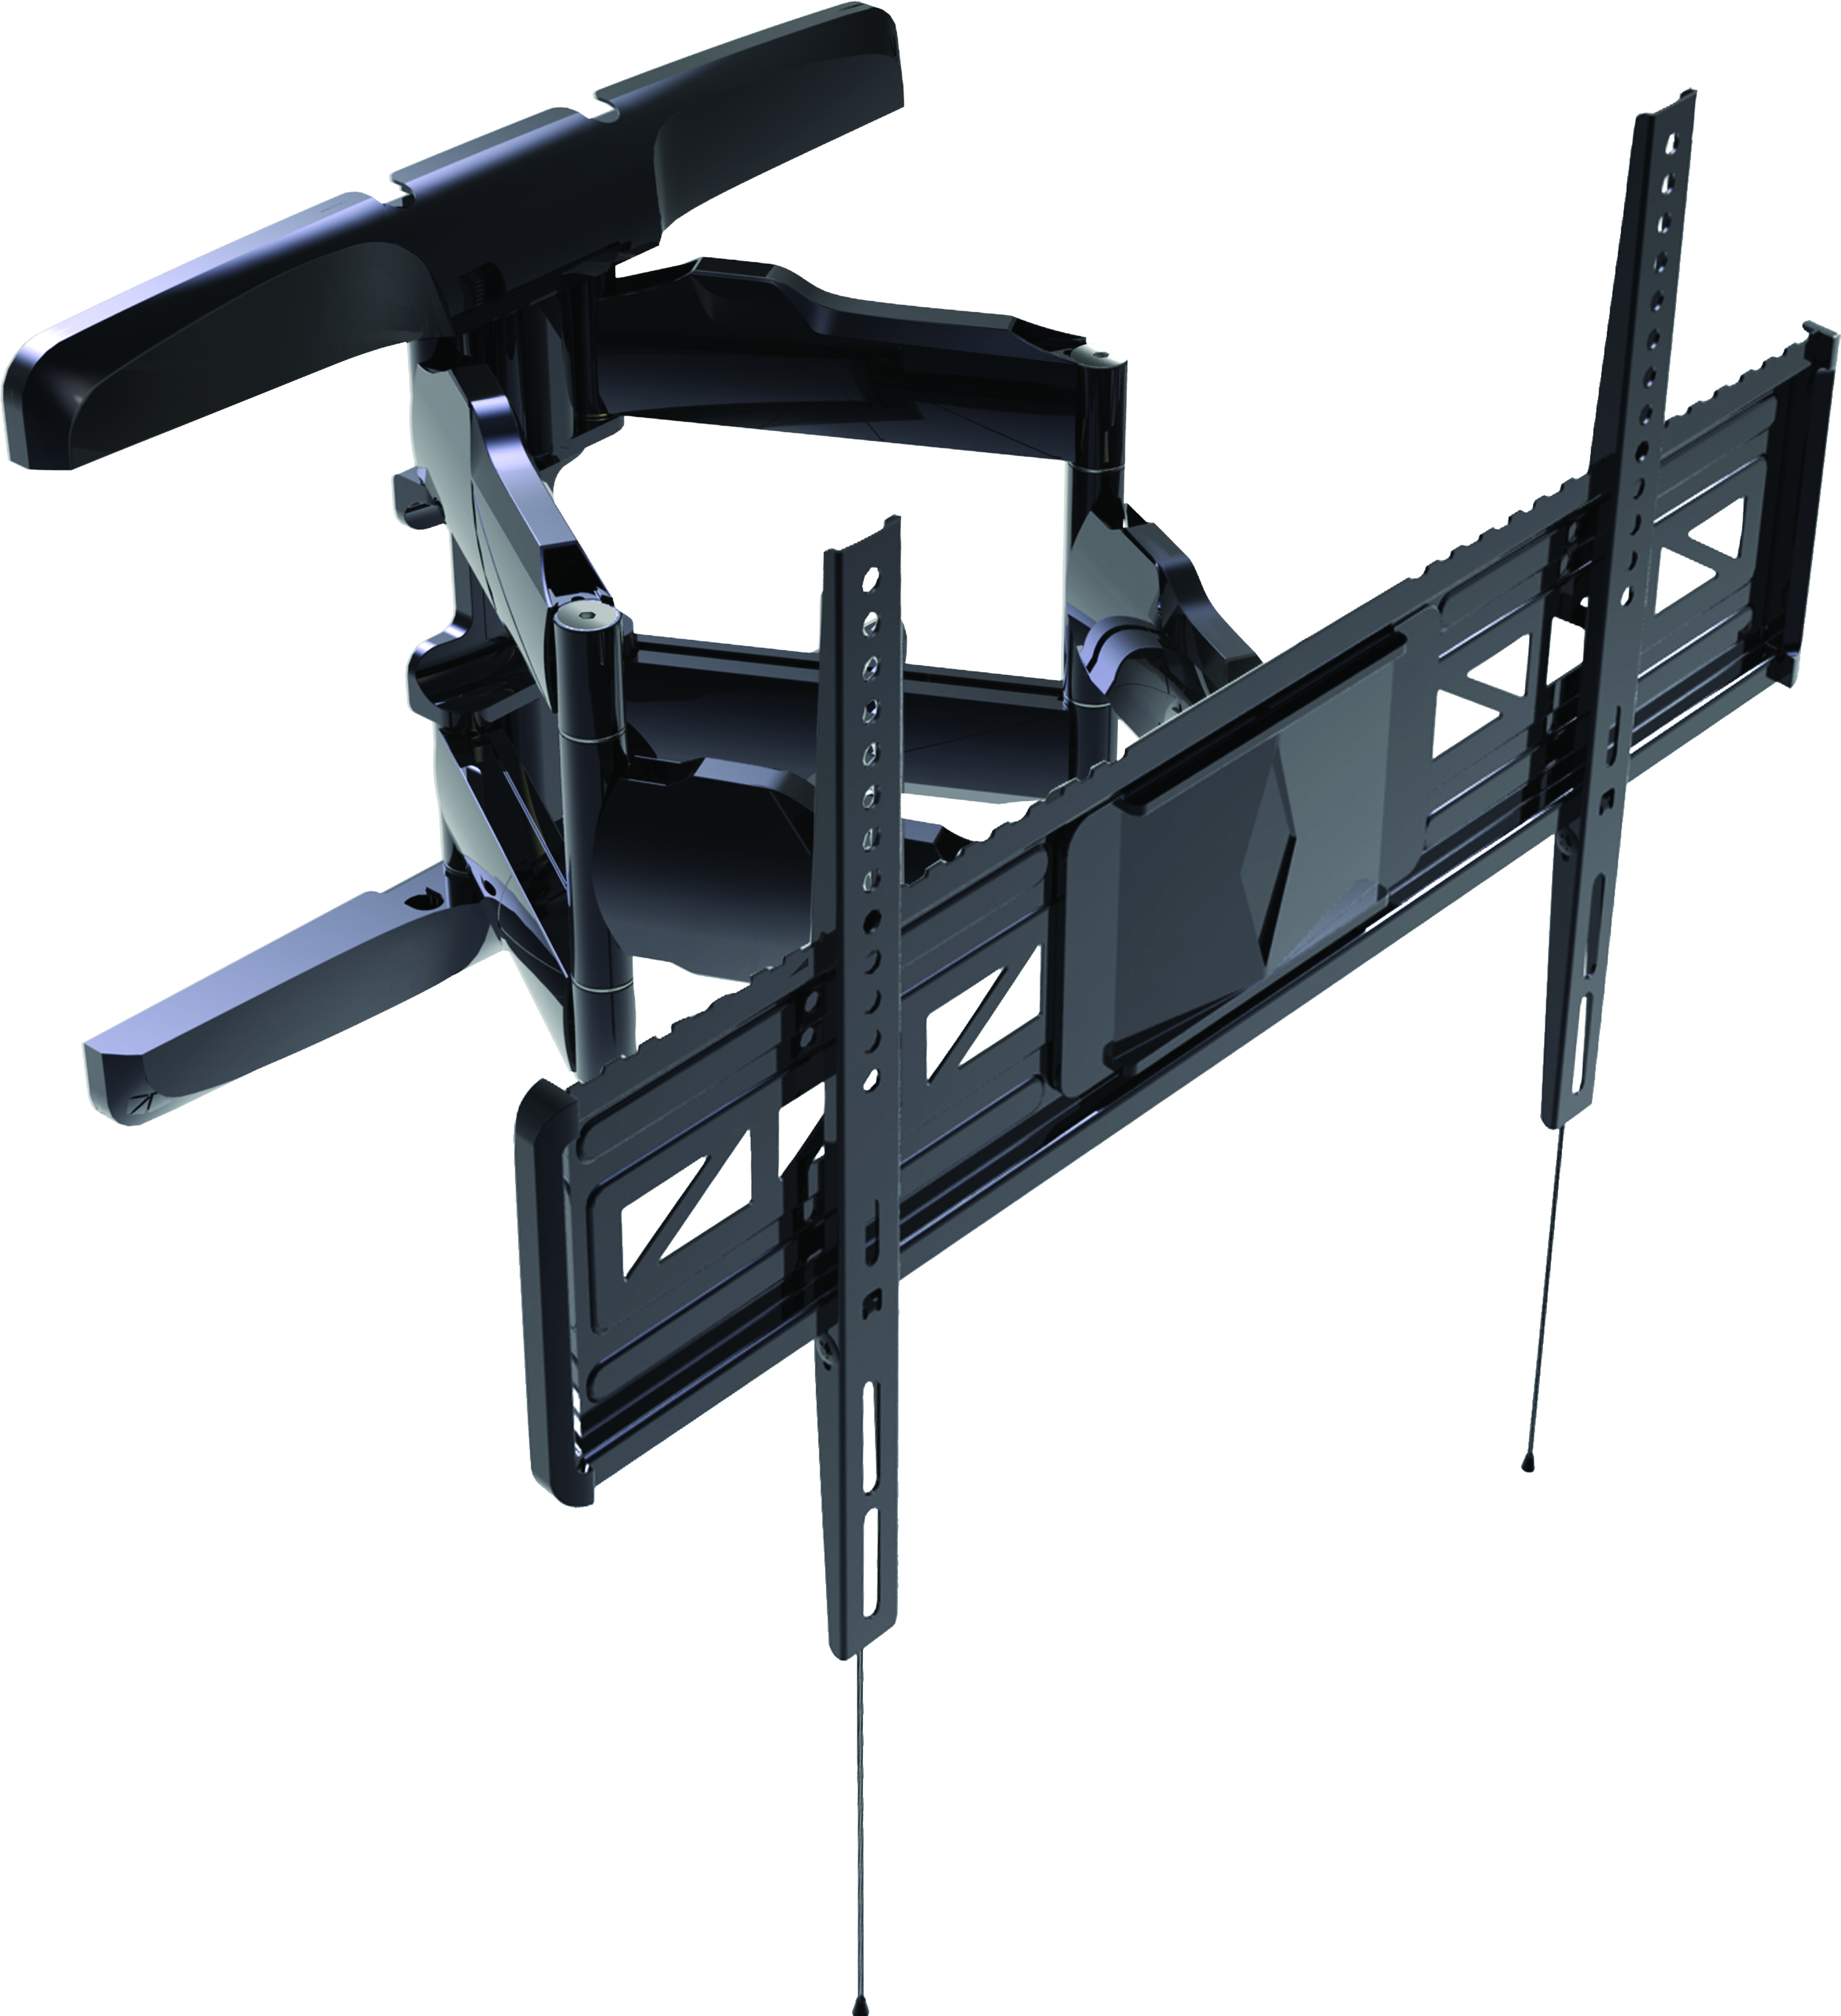 """DCA4790 DIRECTCONNECT FLAT LCD/PDP ARTICULATING TILTING MOUNT FOR 47""""-90"""" BLACK 800X600 VESA LEVEL 2"""" - 17"""" EXTENSION 130LBS MAX **EXTRA FREIGHT ITEM**"""